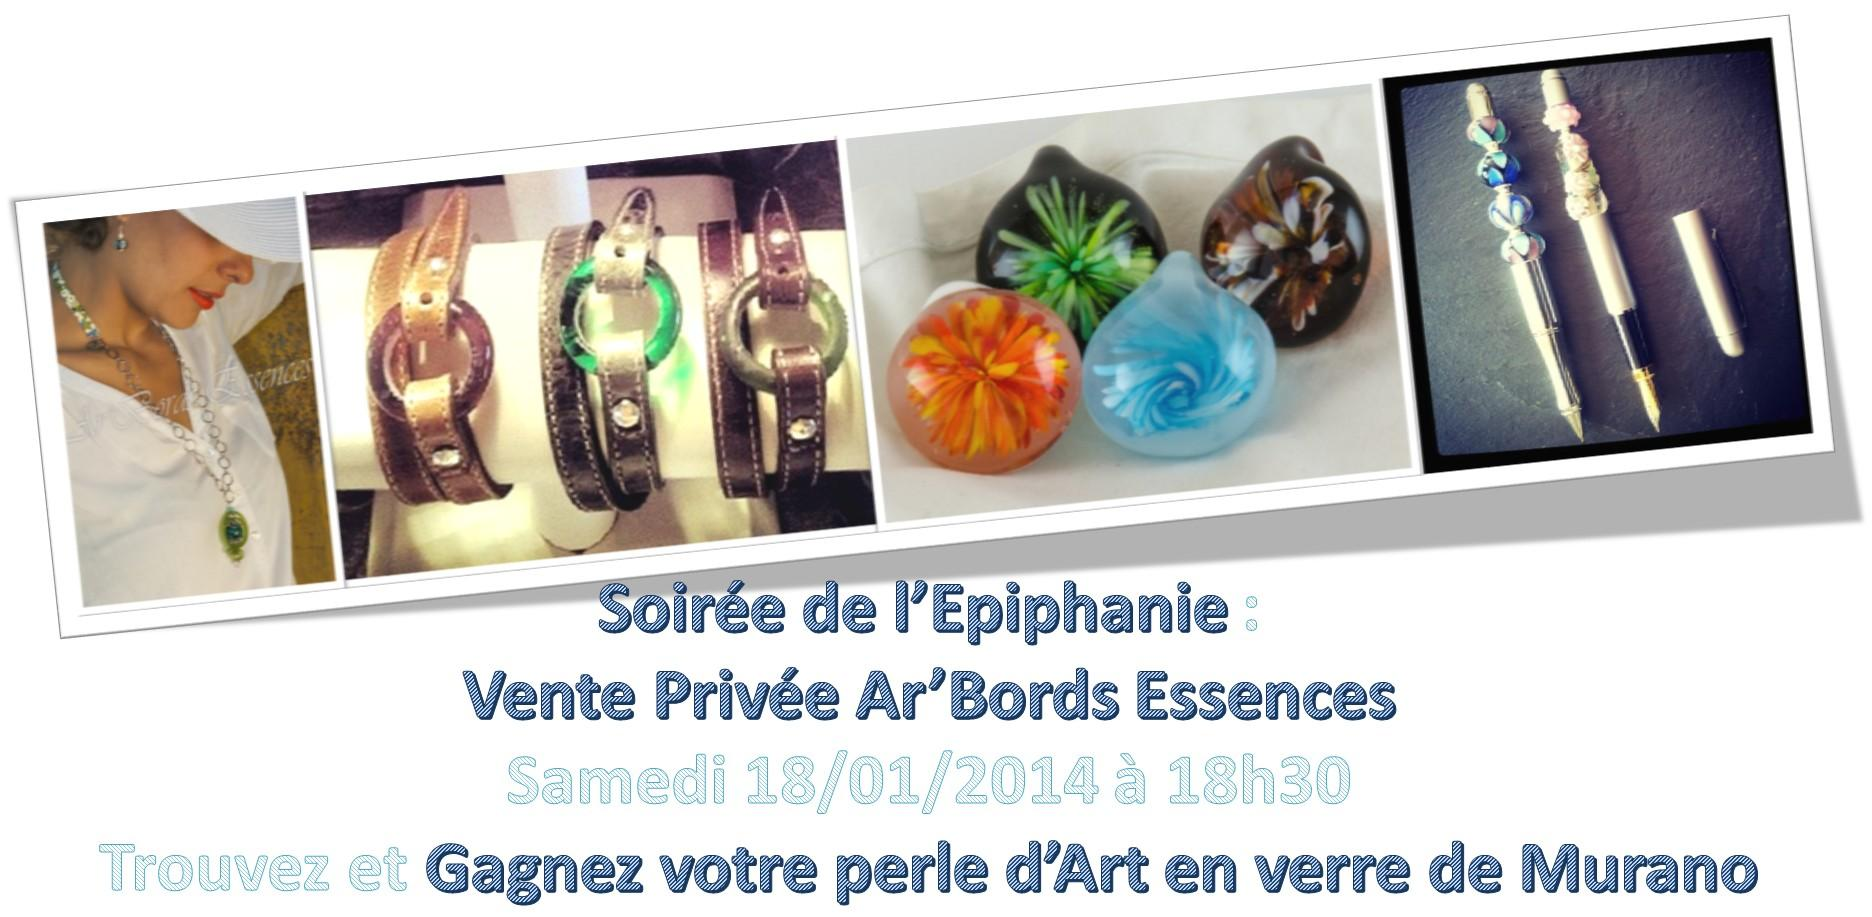 Actualité de ariane chaumeil Ar'Bords Essences - A la Guilde du Dragon de Verre 4e Vernissage : Soirée de l'Epiphanie, vente privée Ar'Bords Essences